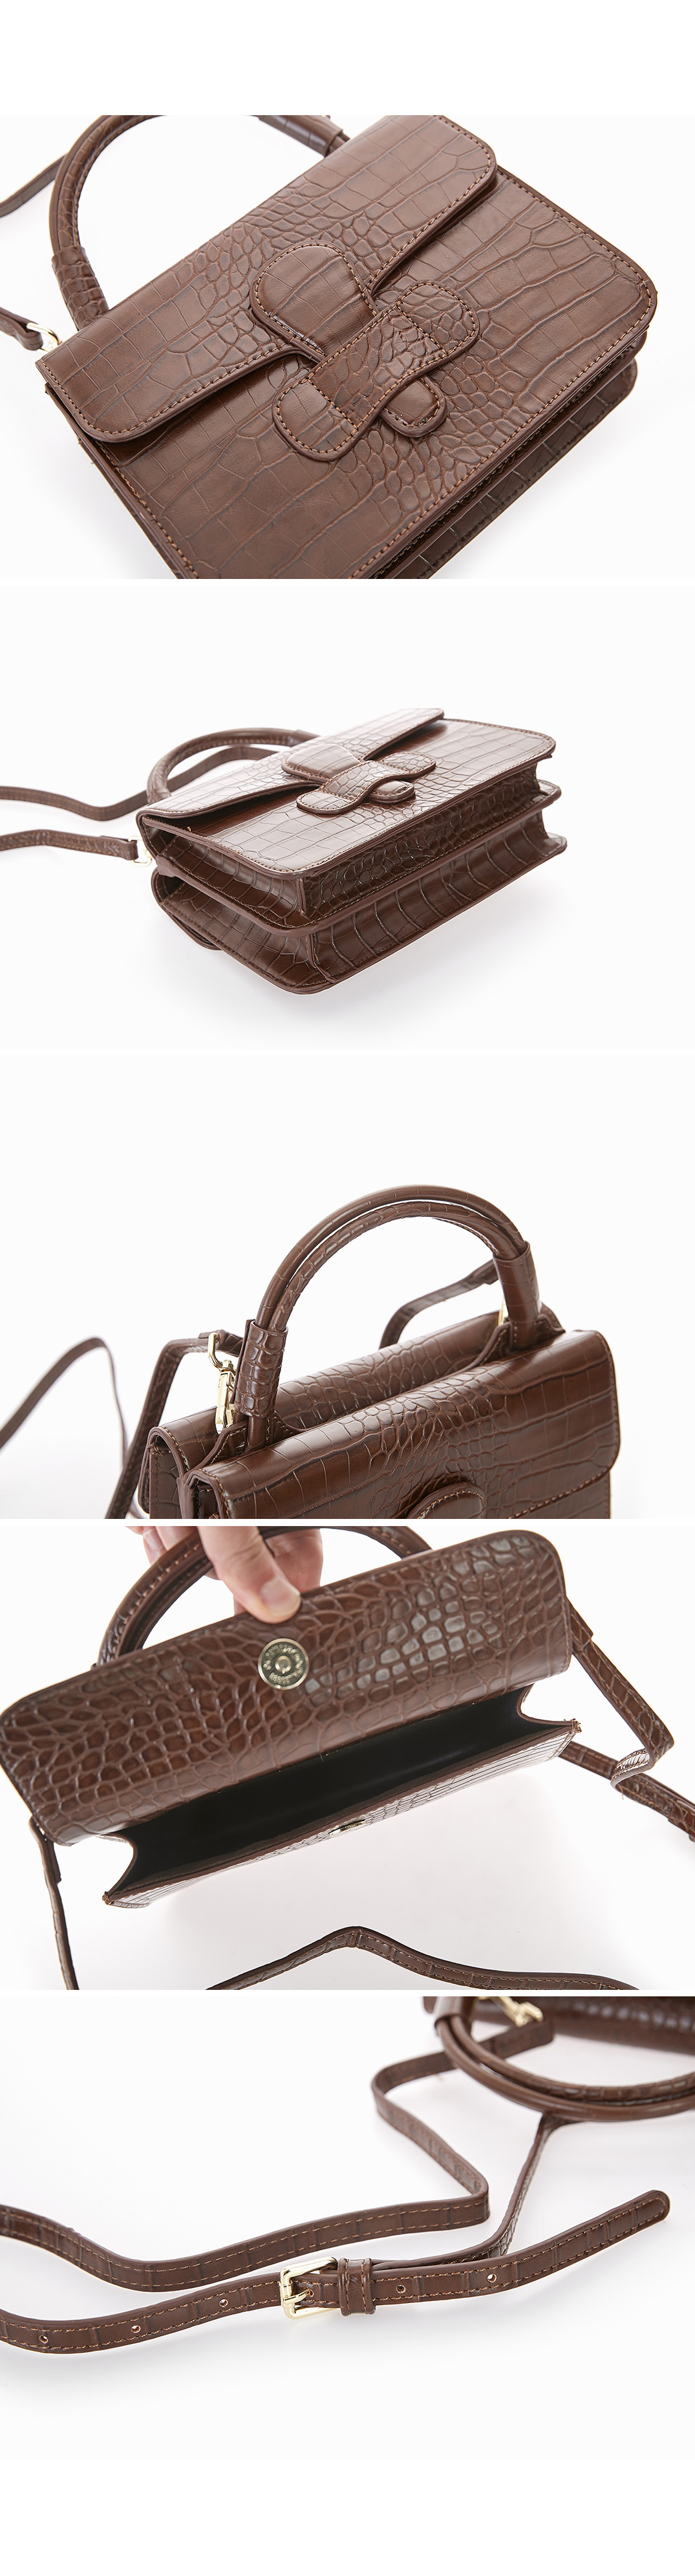 Maison shoulder bag